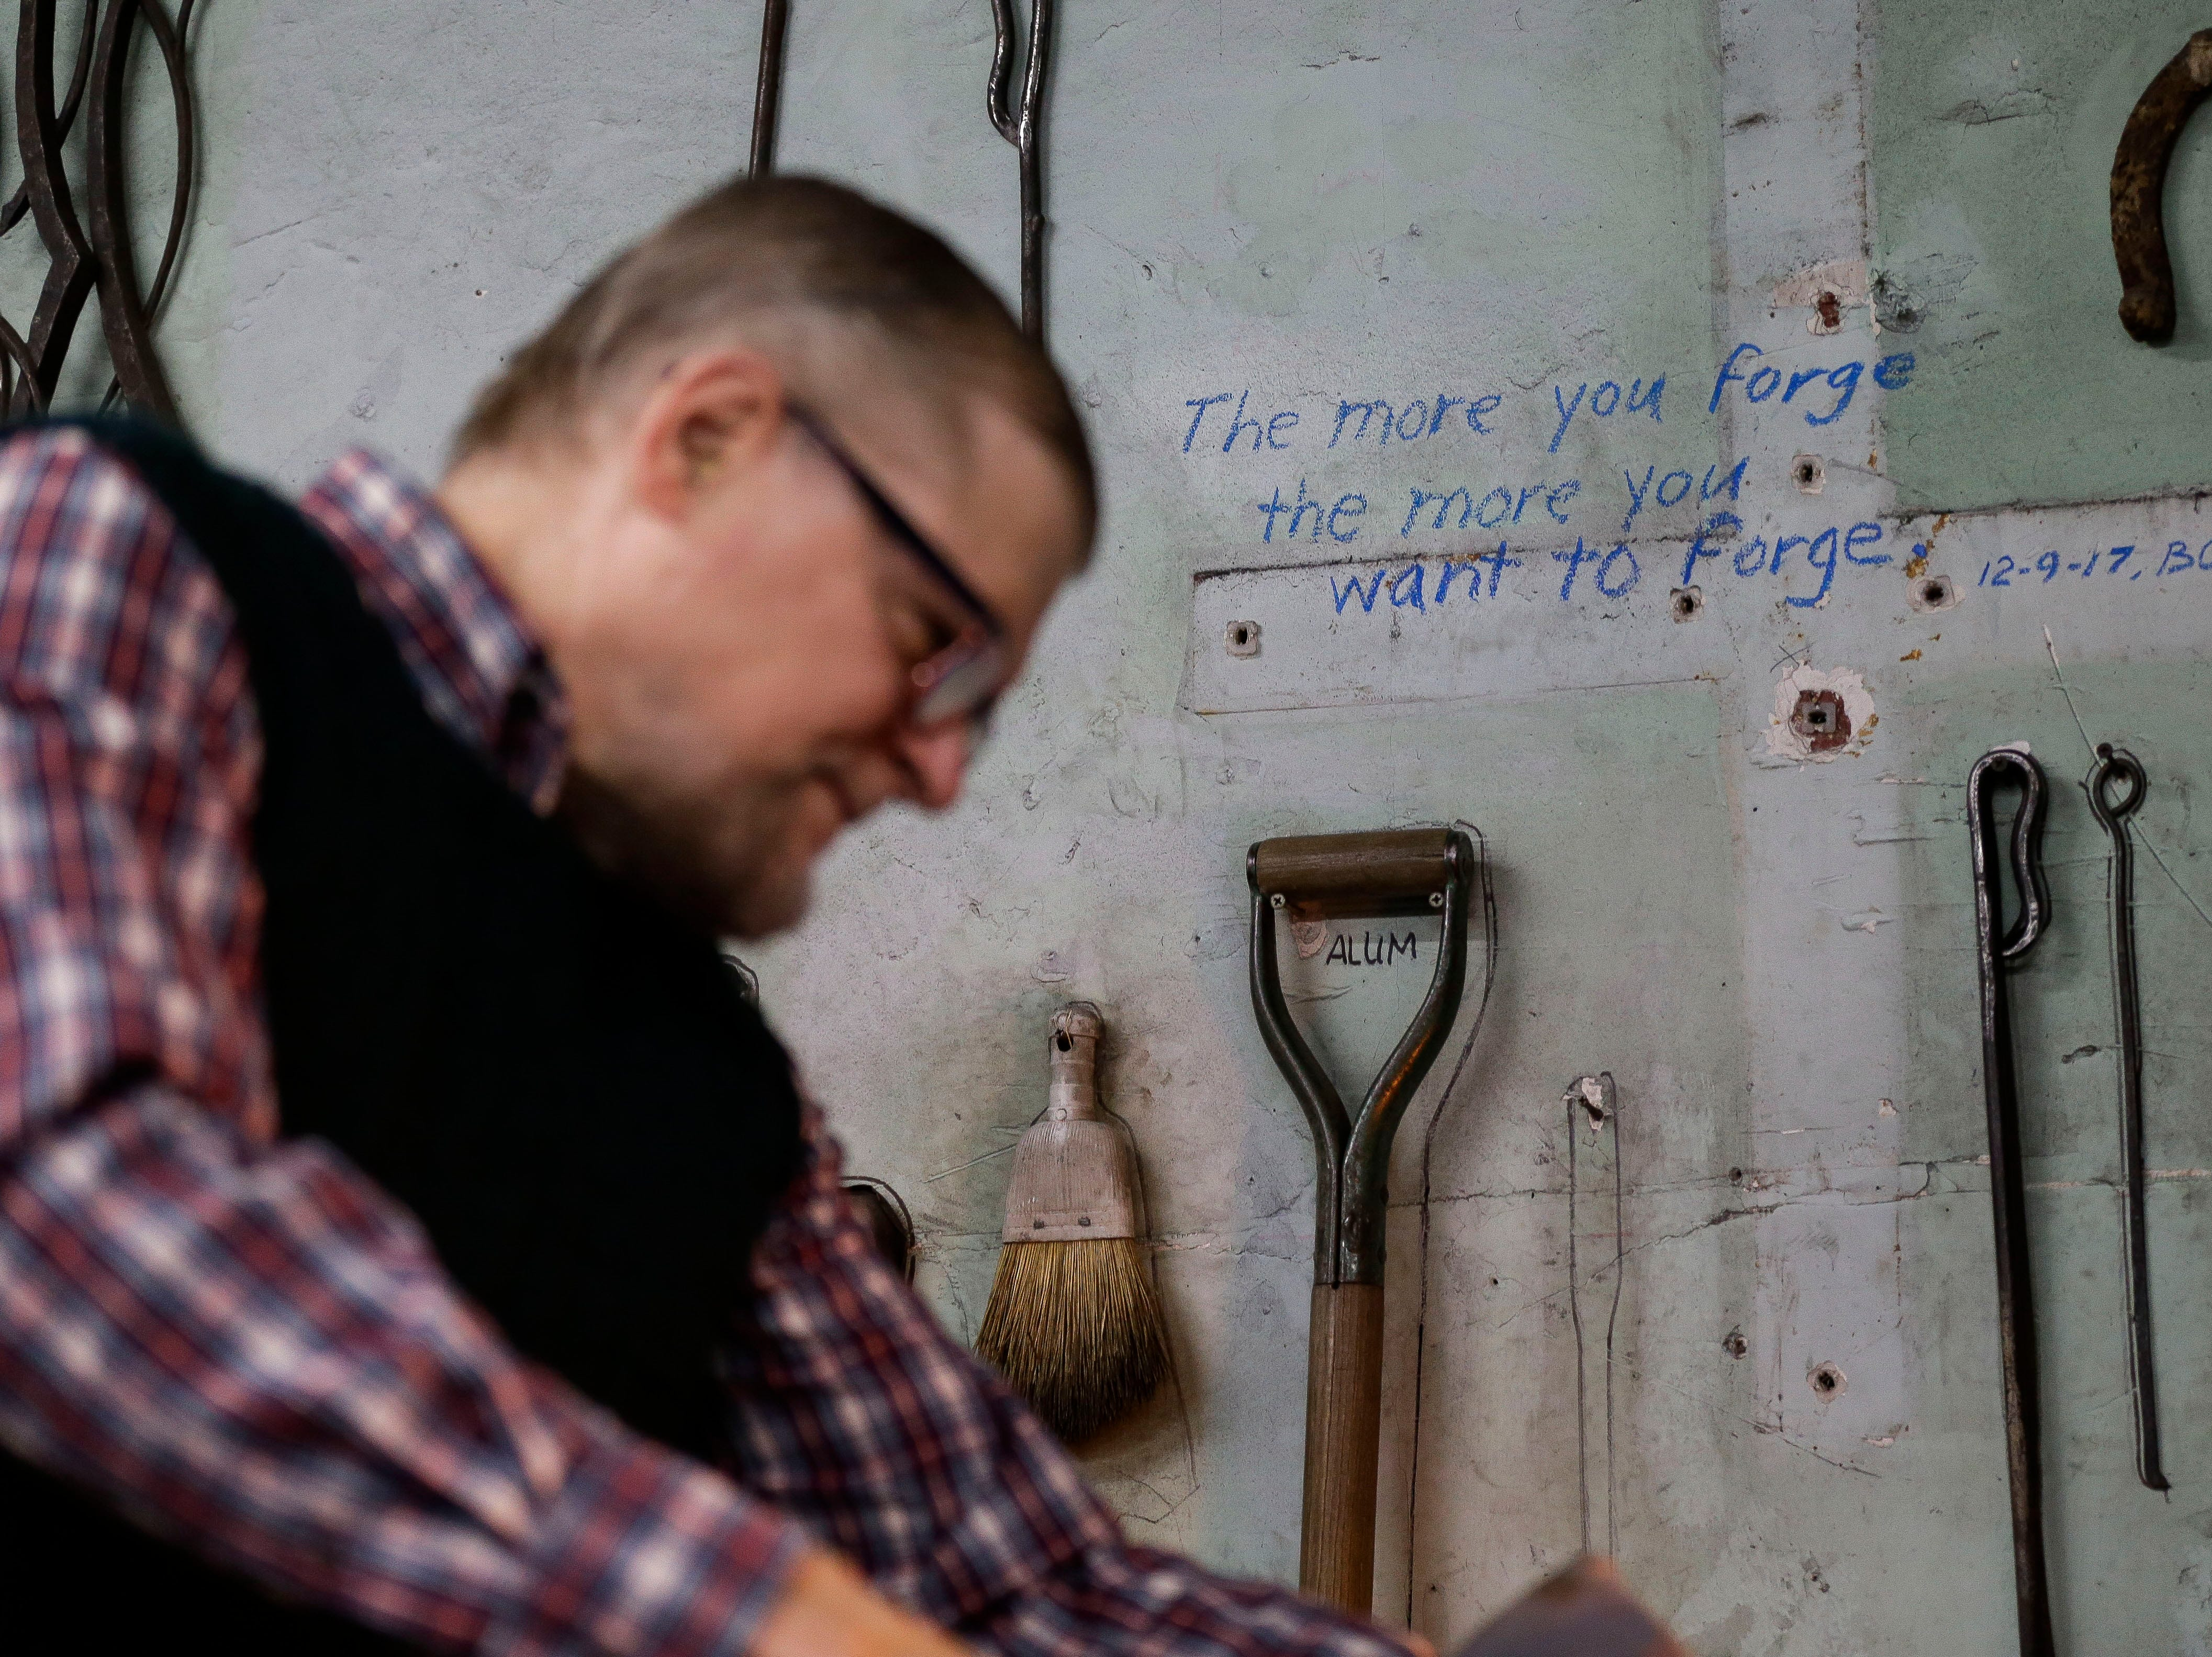 A quote from Boleslaw Kochanowski is shown on the wall as he forges a piece of metal on Tuesday, December 25, 2018, at his workshop in Junction City, Wis. Tork Mason/USA TODAY NETWORK-Wisconsin